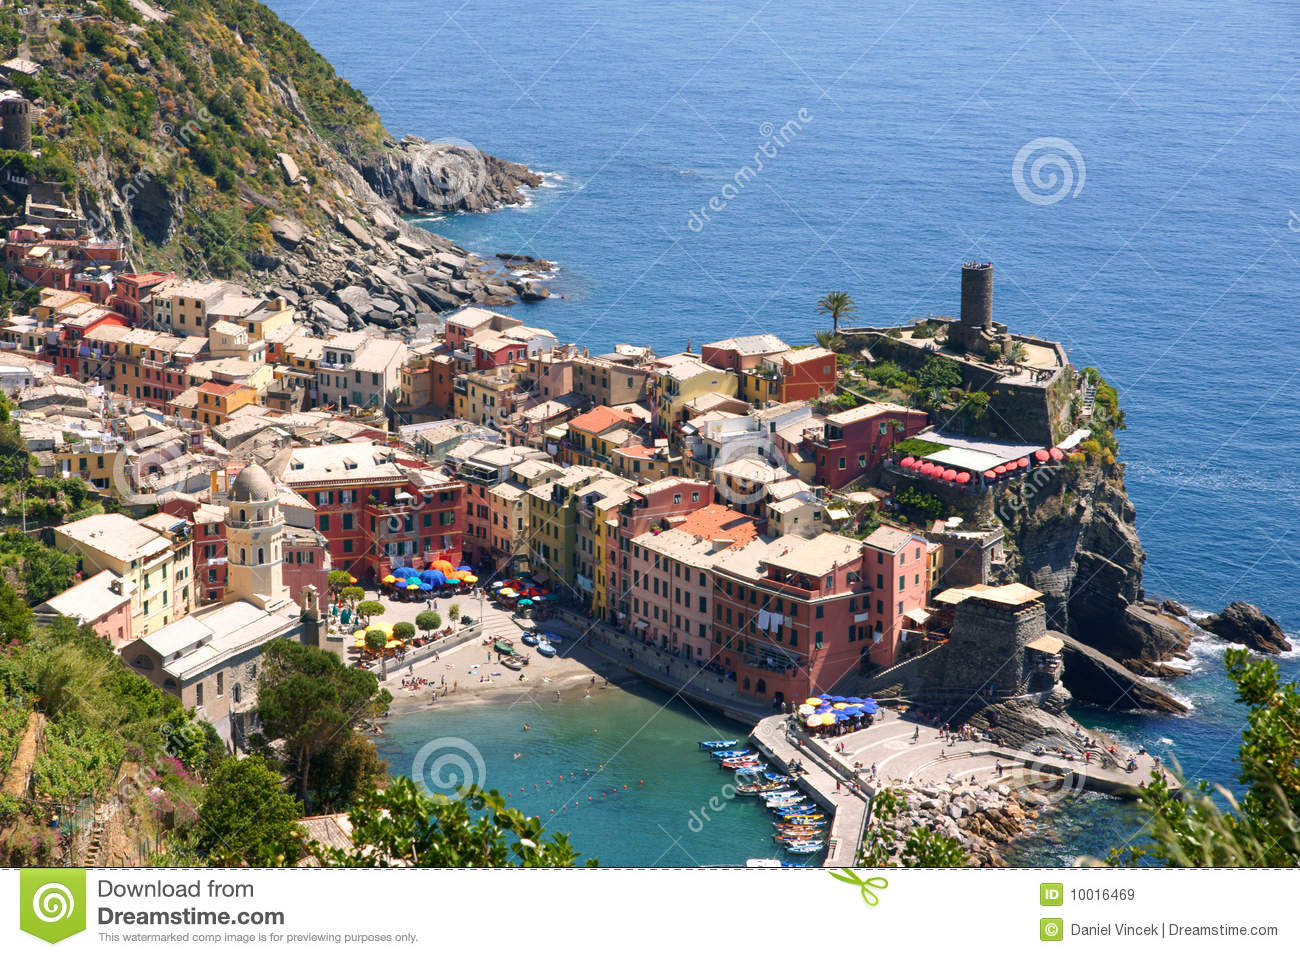 building exterior design free with Royalty Free Stock Images Corniglia Cinque Terre Italy Image10016469 on Trends Cabi  Paint Colors furthermore 7b17g6 moreover Modern European Office Building Wall Texture Image 4685433 moreover Grungy Brick Background Image 1784116 further Minimalism Art Architecture Design.